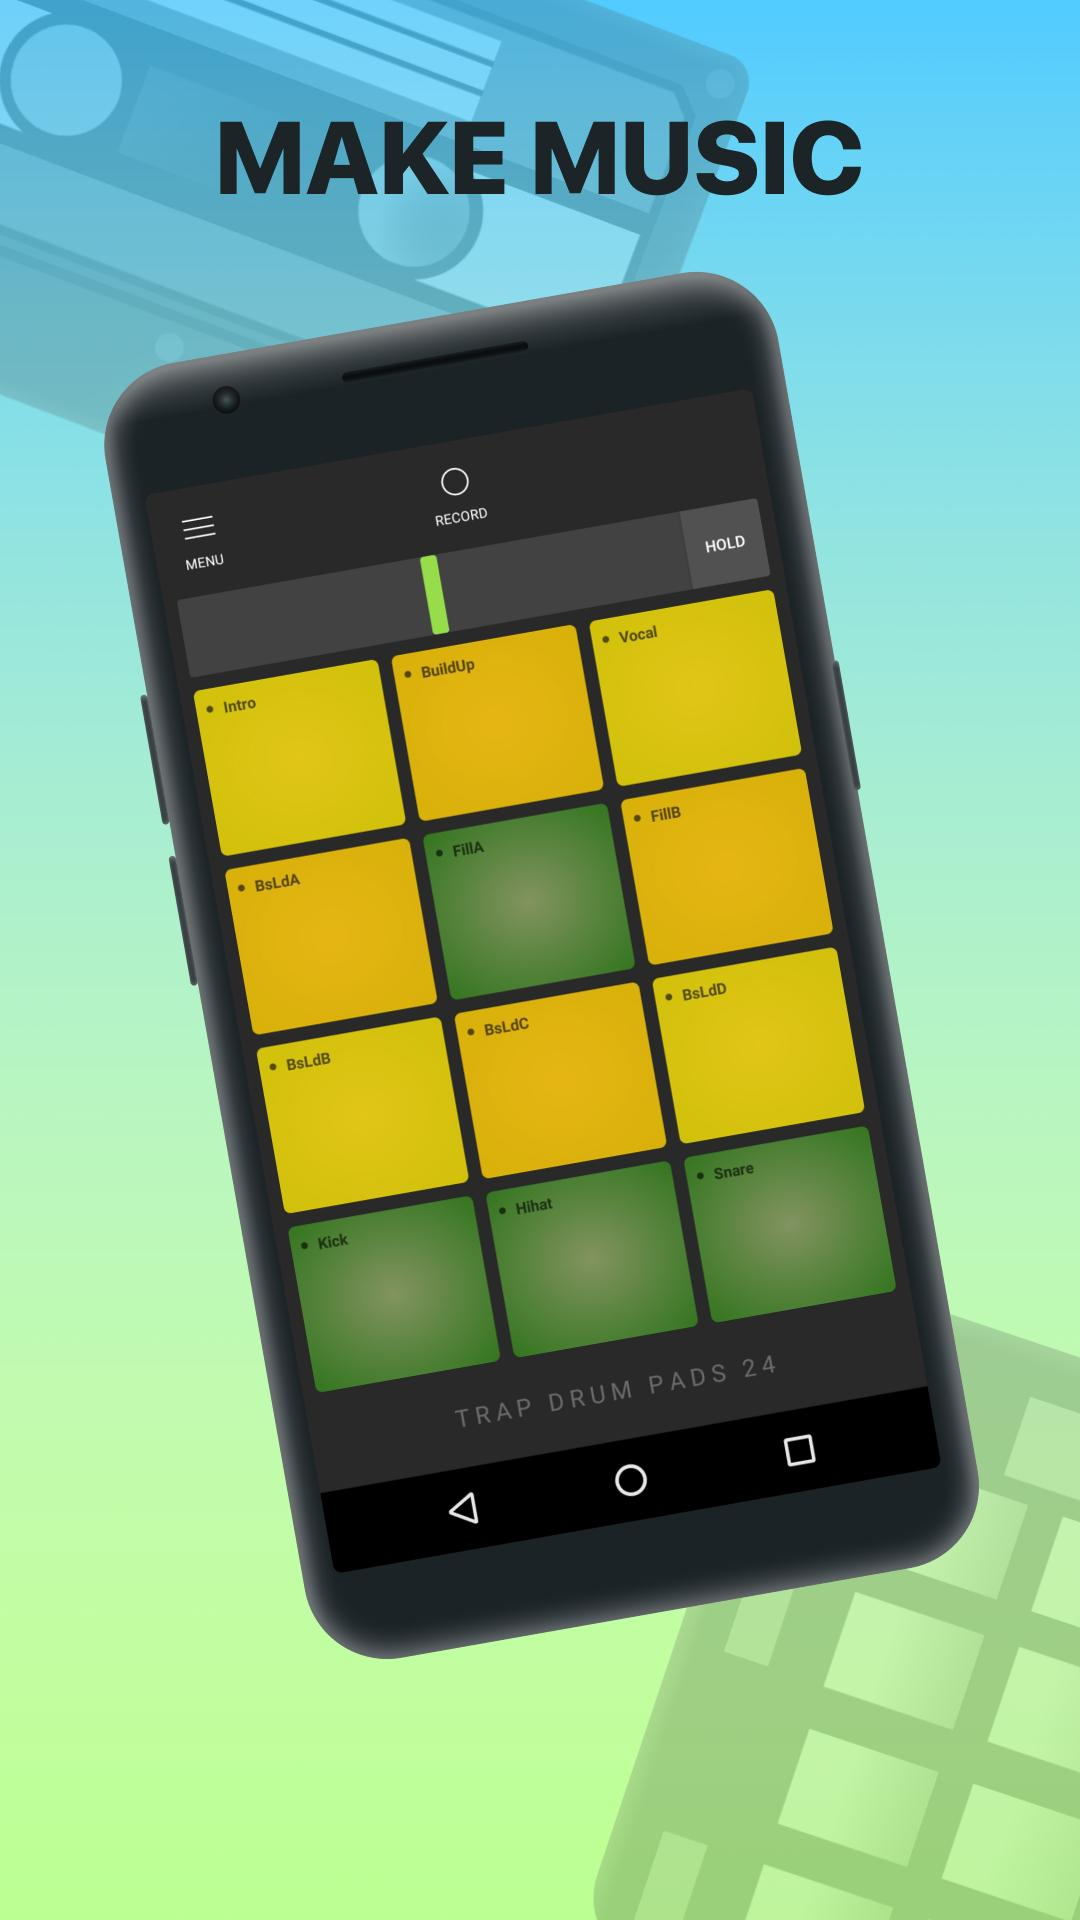 Trap Drum Pads 24 for Android - APK Download